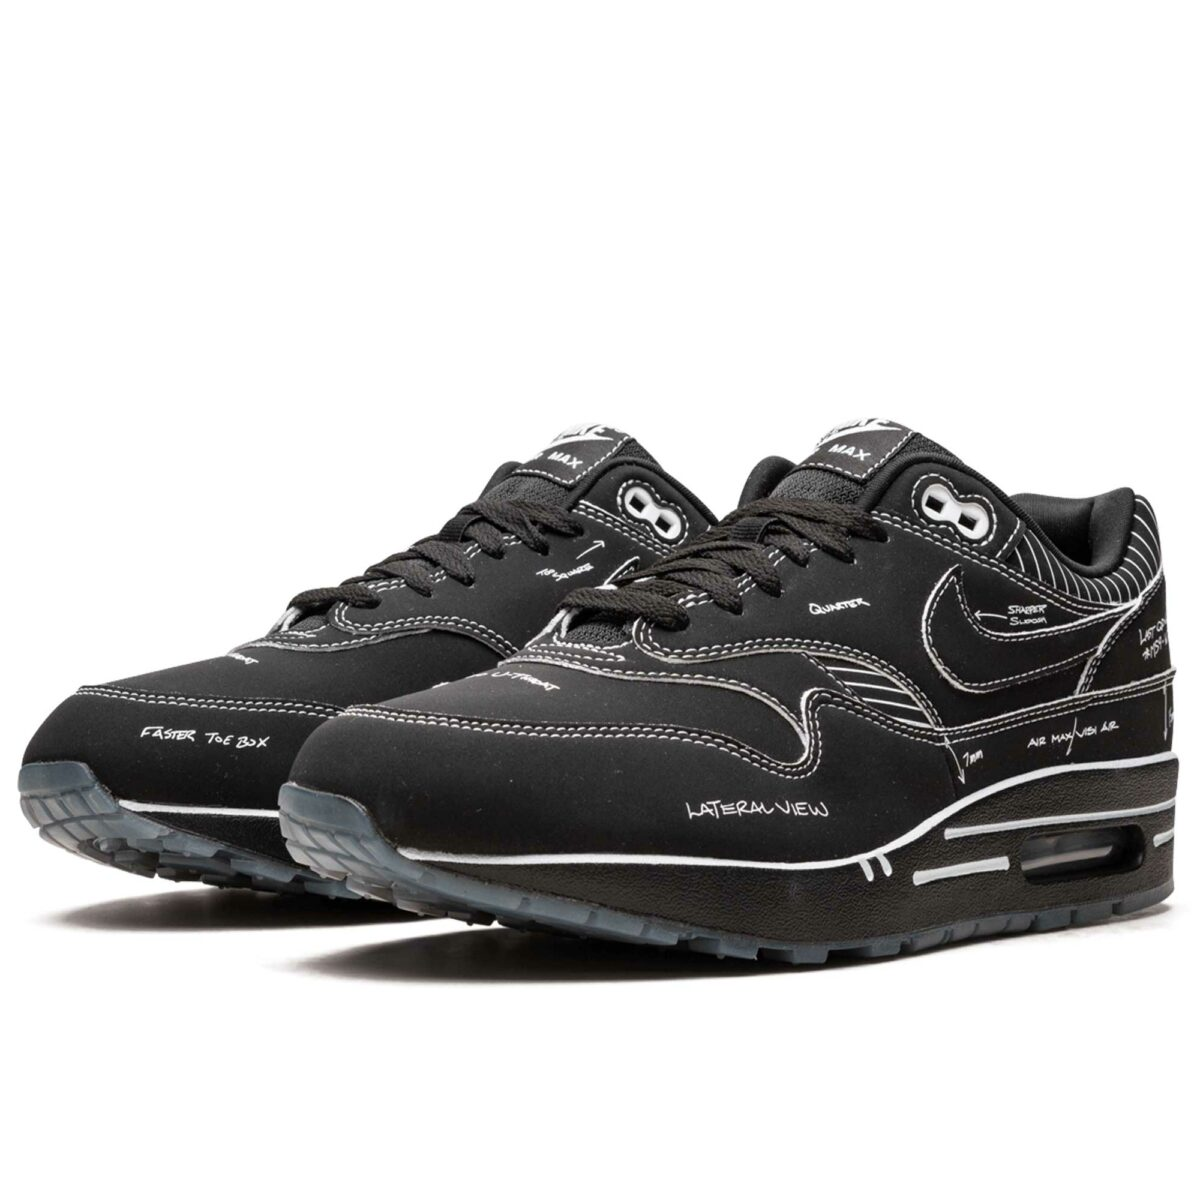 nike air max 1 sketch to shelf - black CJ4286_001 купить